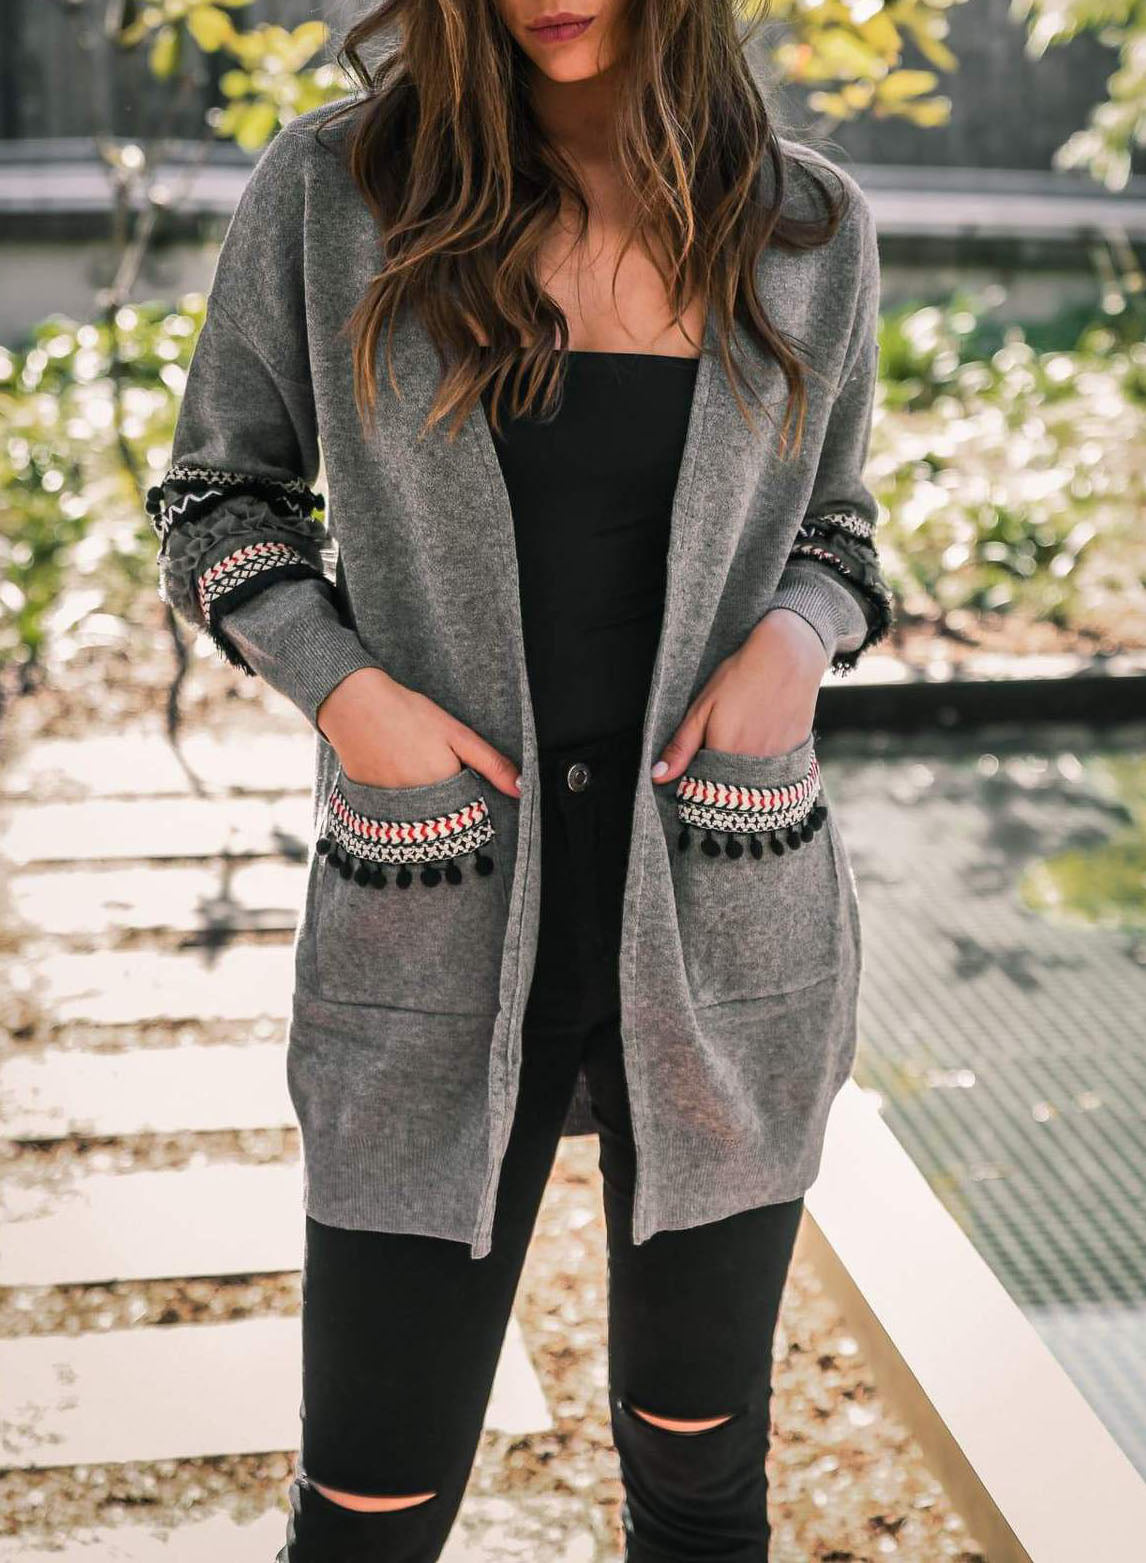 e4f48a28d5 Womens Casual Light Weight Open Front Long Sleeve Boho Knit Sweater Cardigan  With Pockets